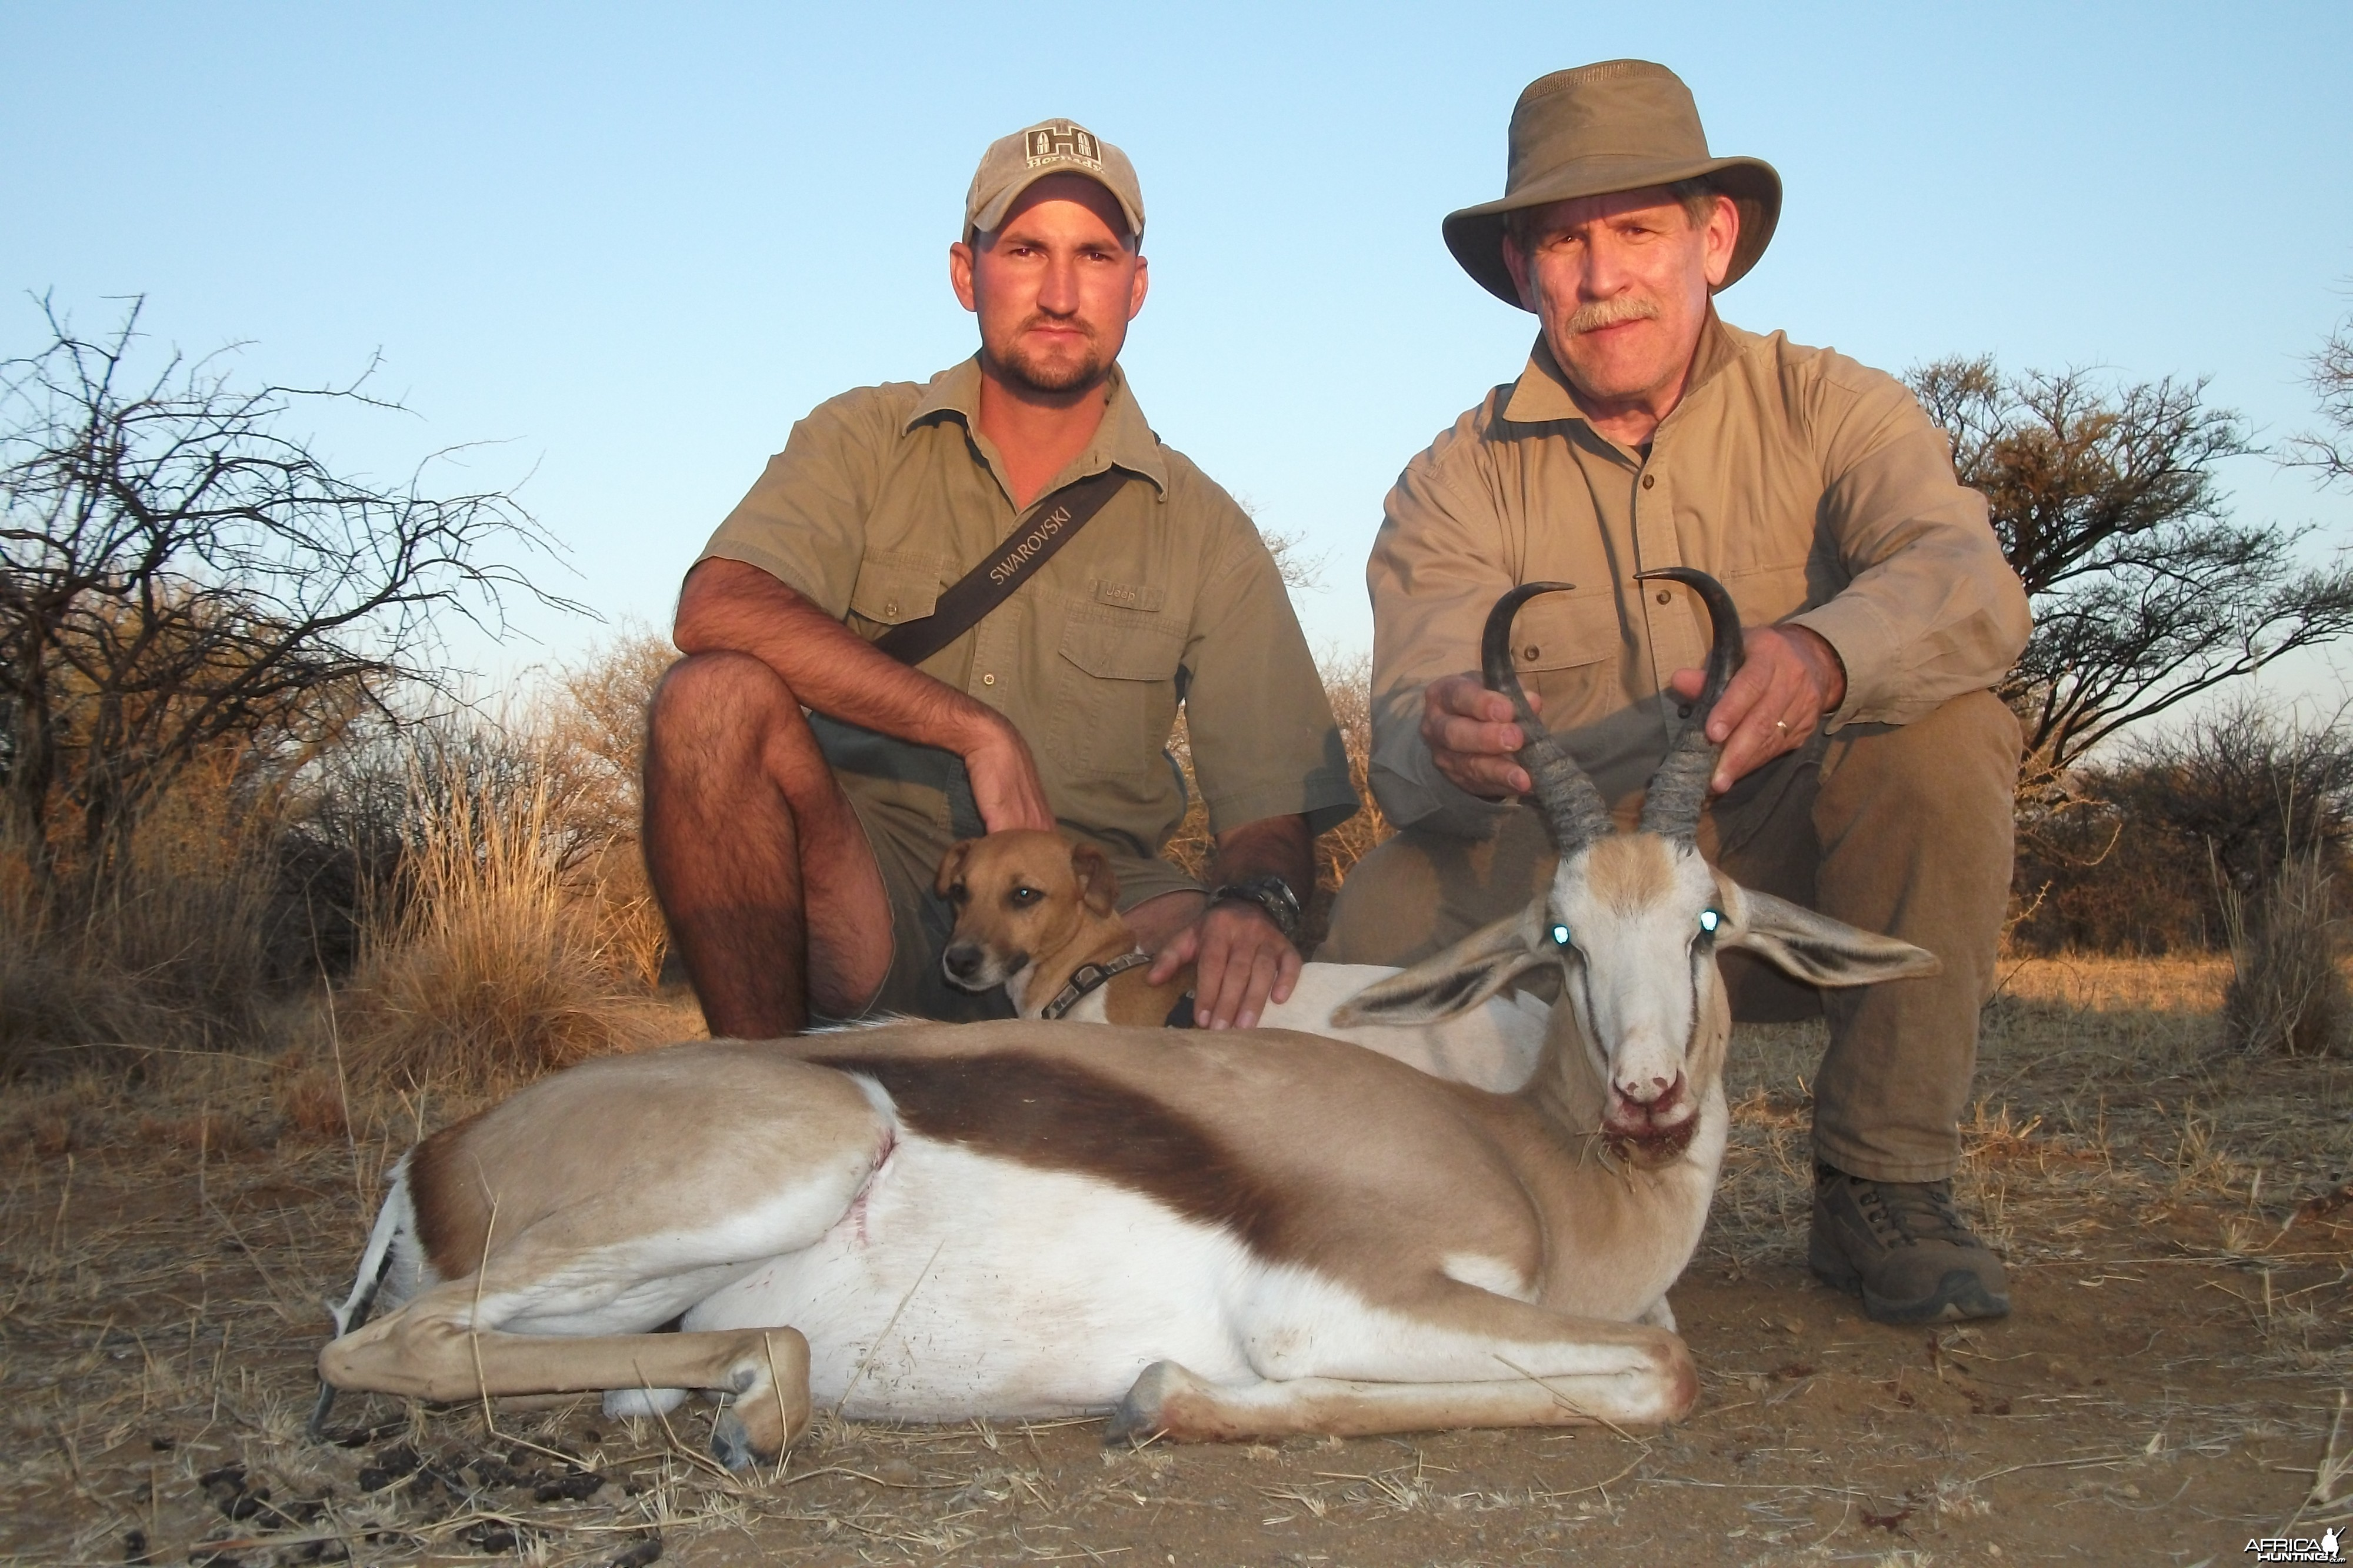 Springbok hunted with Ozondjahe Hunting Safaris in Namibia